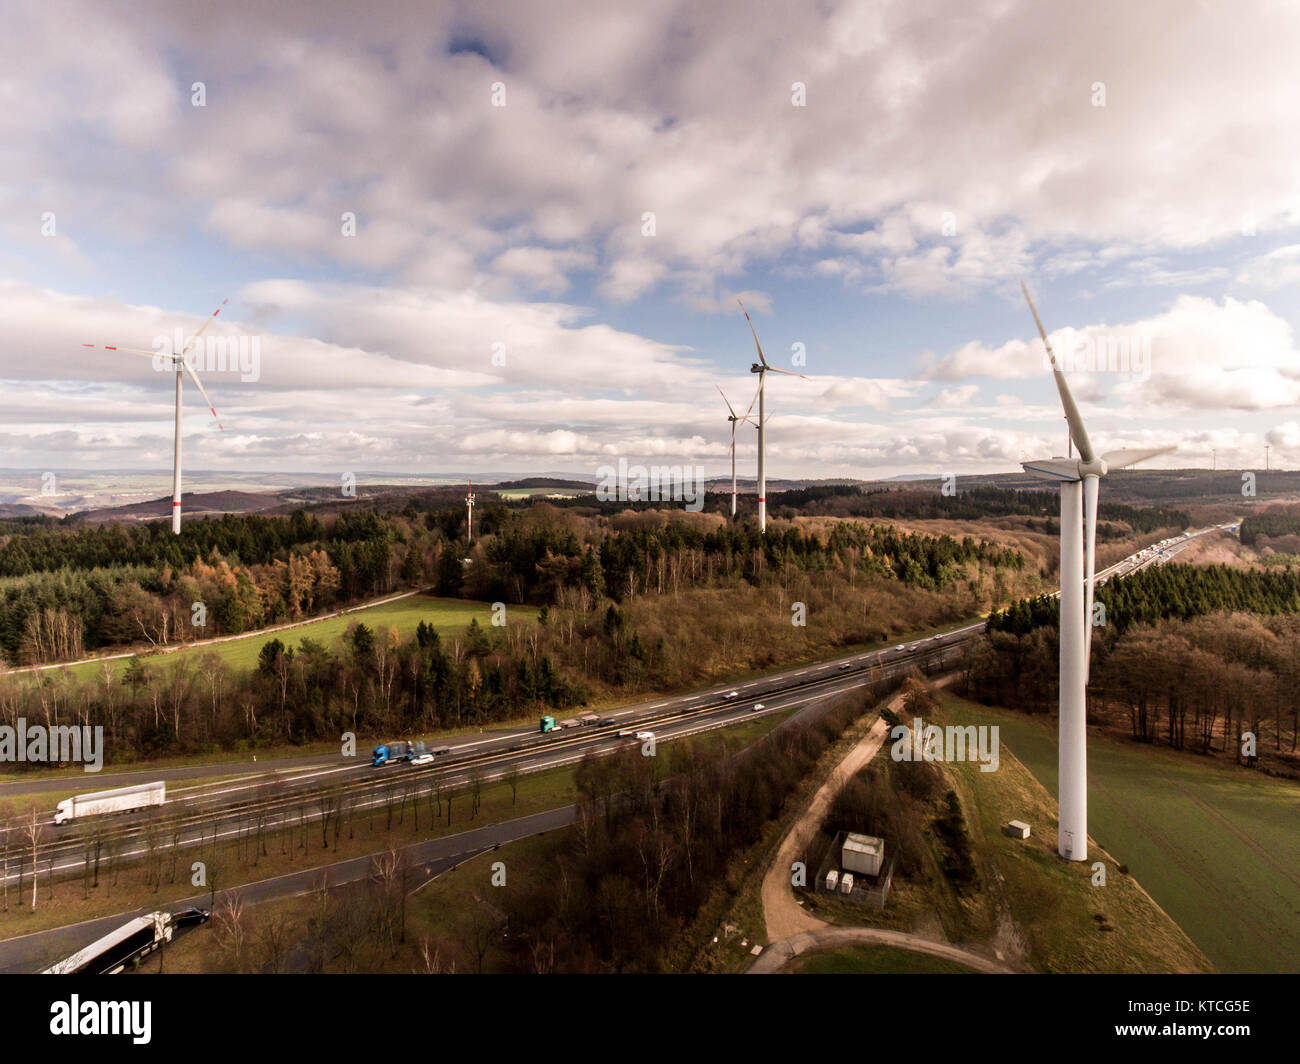 A panorama aerial helicopter view over wind farm landscape in